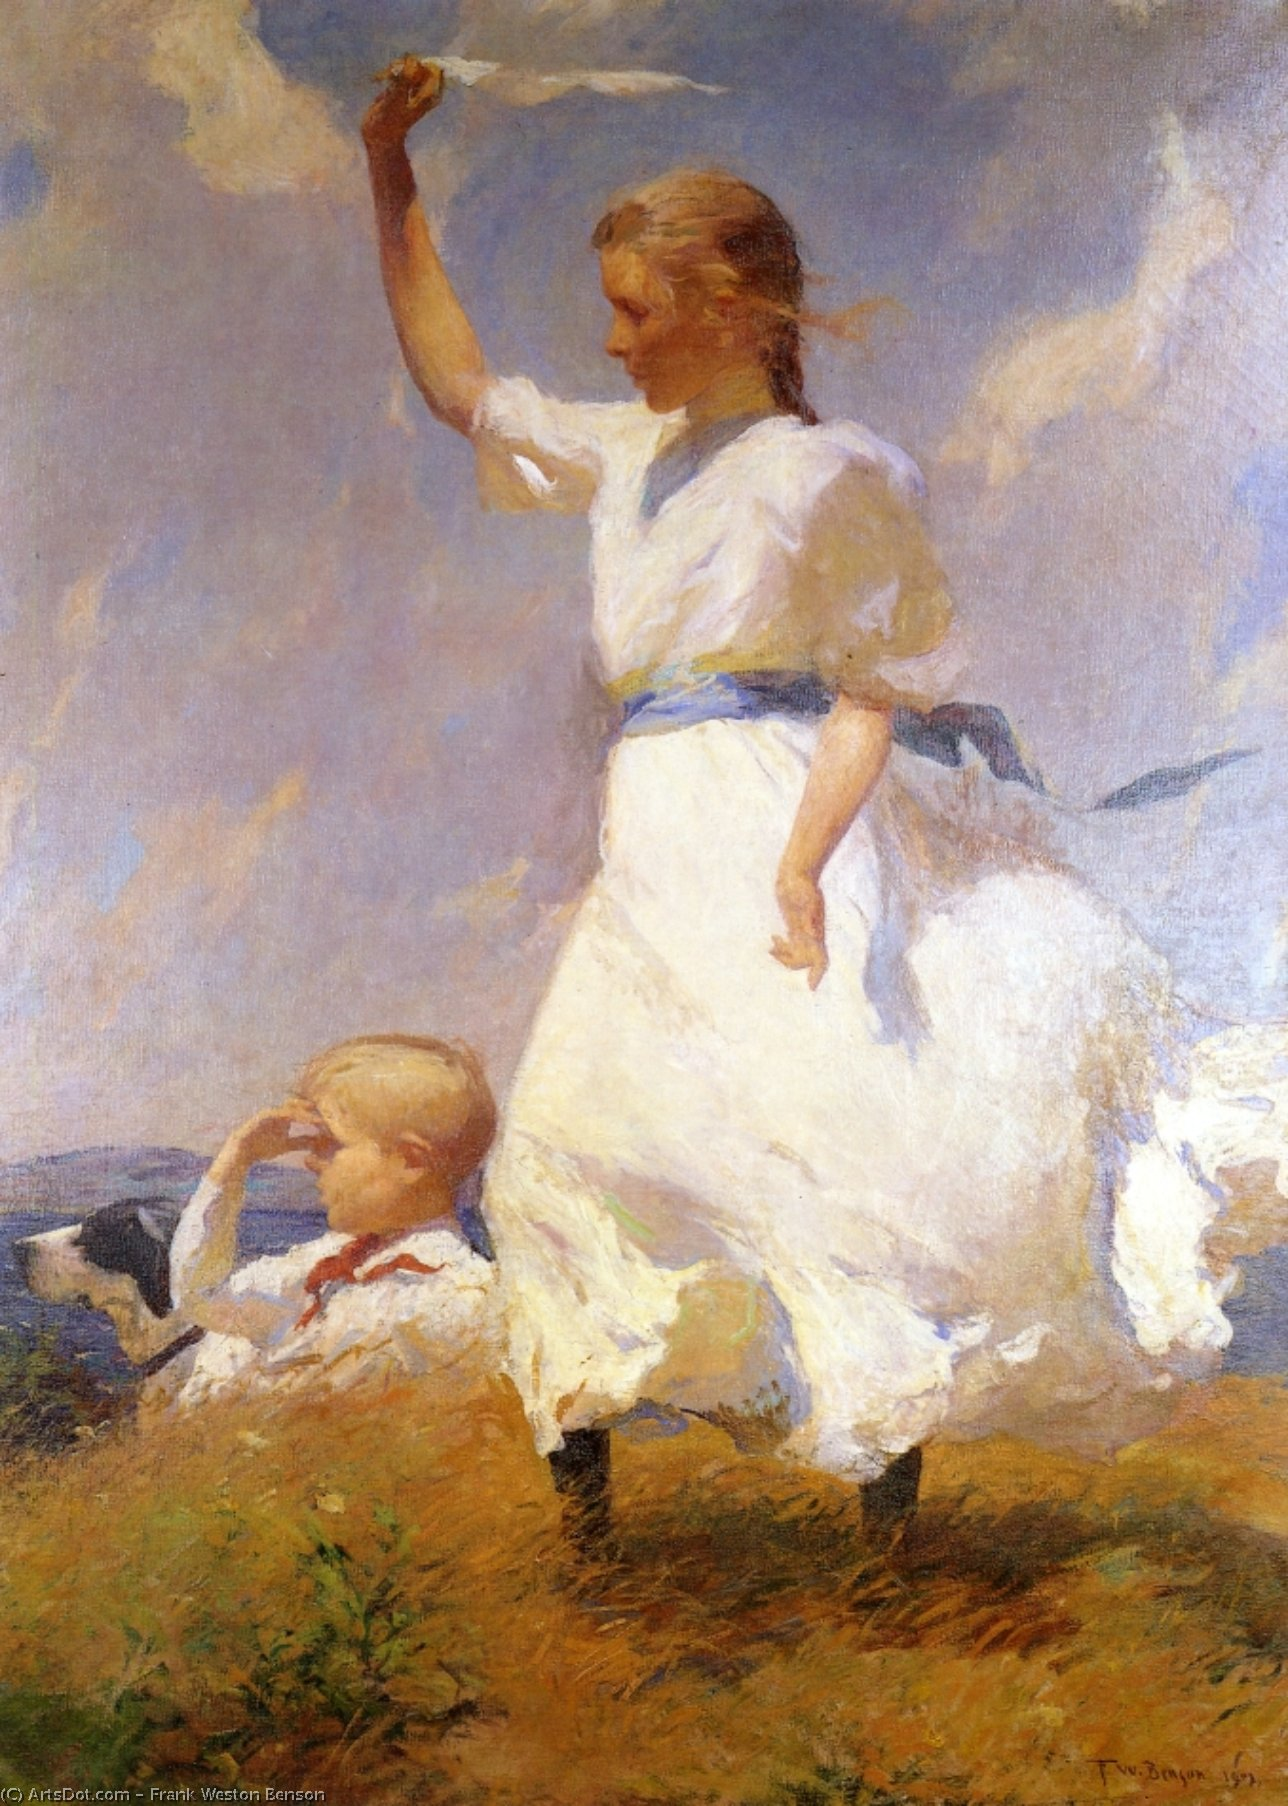 The Hilltop, Oil by Frank Weston Benson (1862-1951, United States)